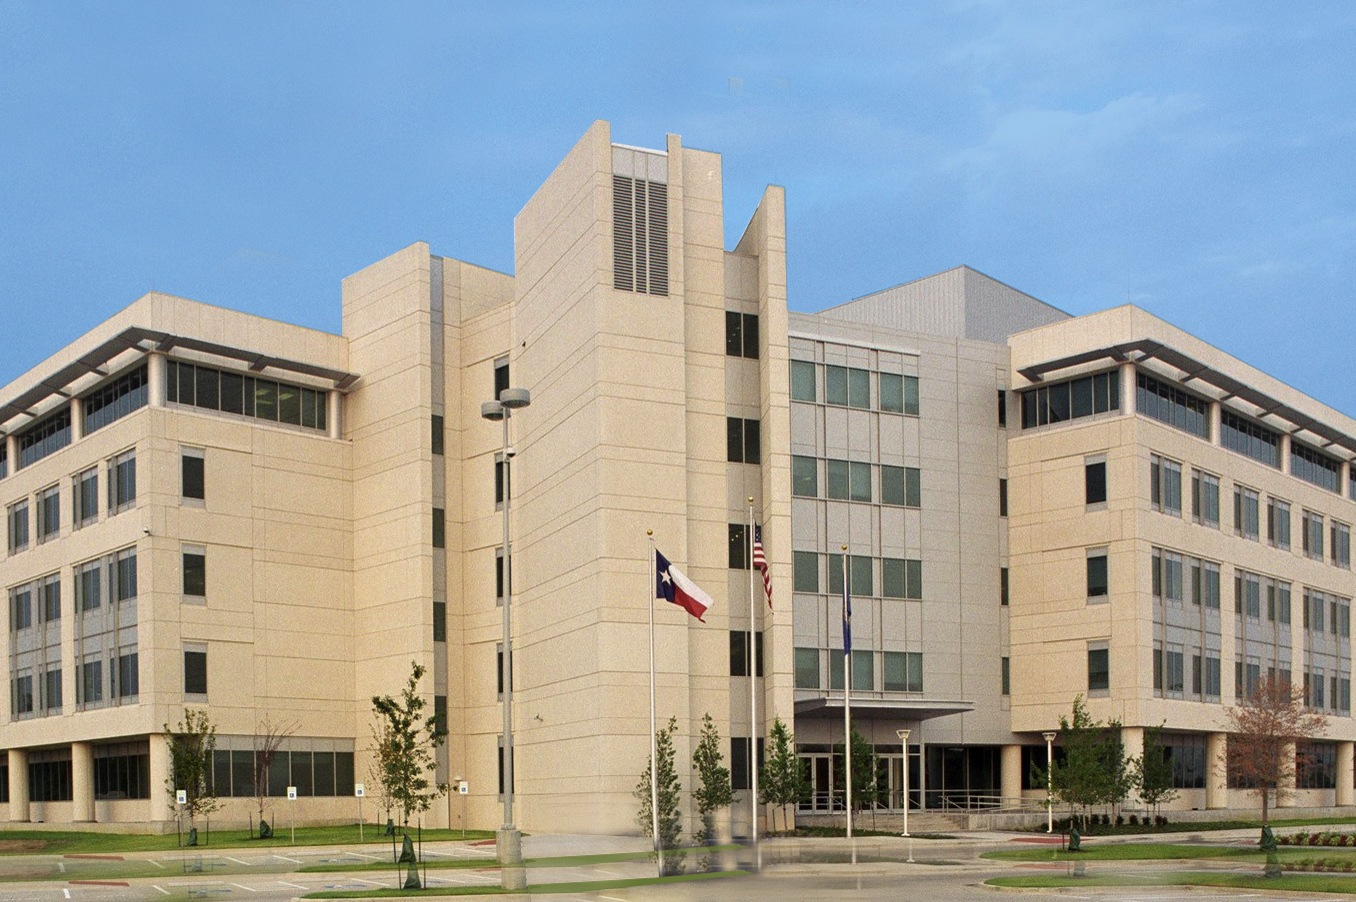 The J. Gordon Shanklin Building, One Justice Way, home of the Dallas Office of the FBI beginning in November 2002.